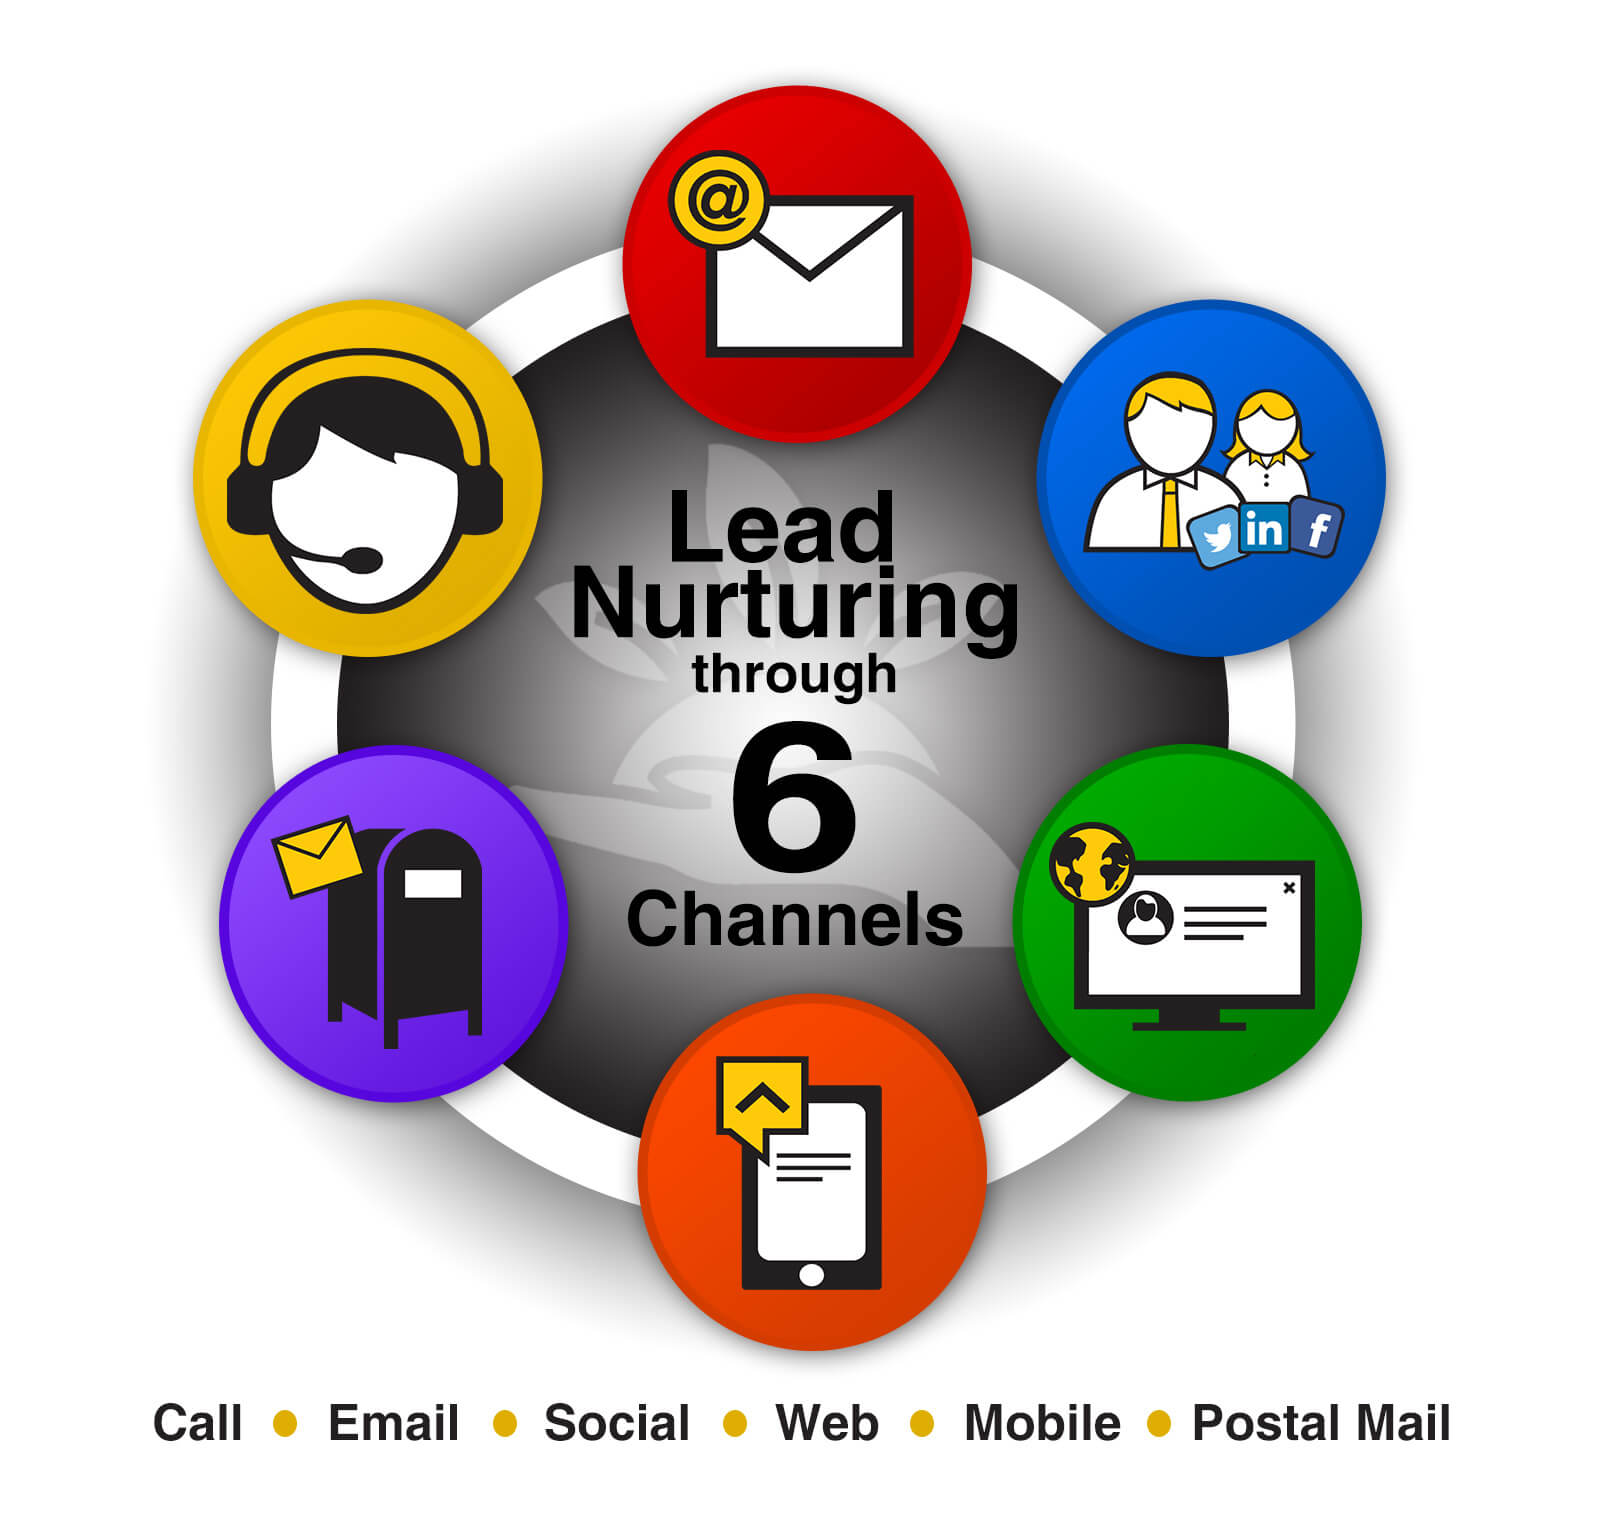 Learn more about our Lead Nurturing Process